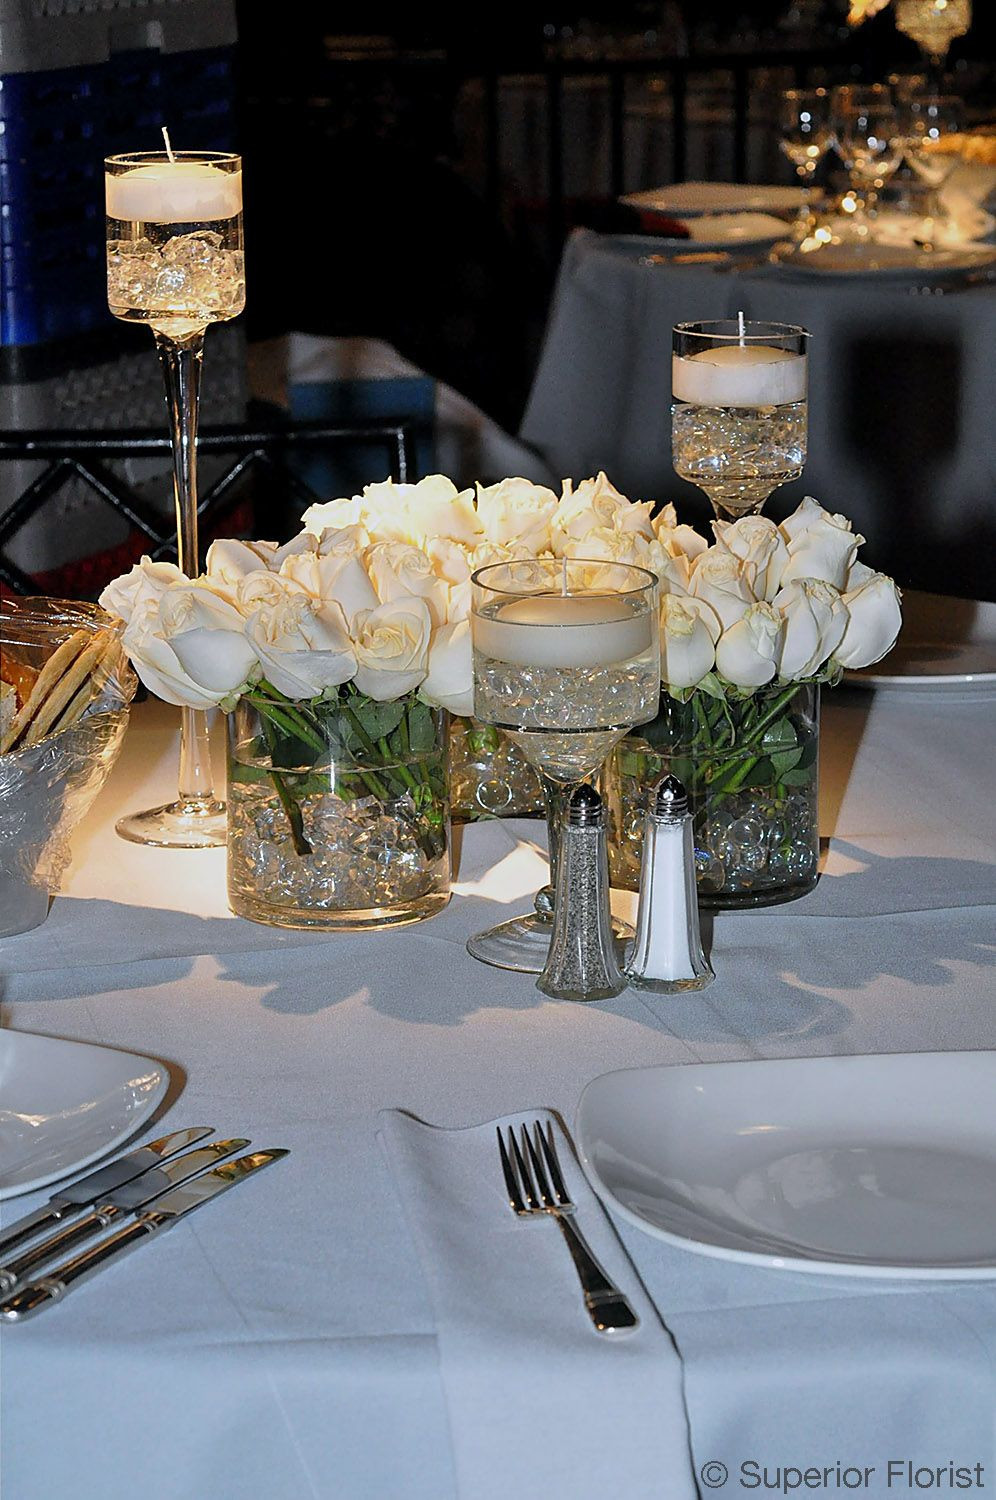 crystal vase florist of superior florist centerpieces group of three glass cylinder regarding superior florist centerpieces group of three glass cylinder vases of white roses vases matched with three candleholders each with a floating candle